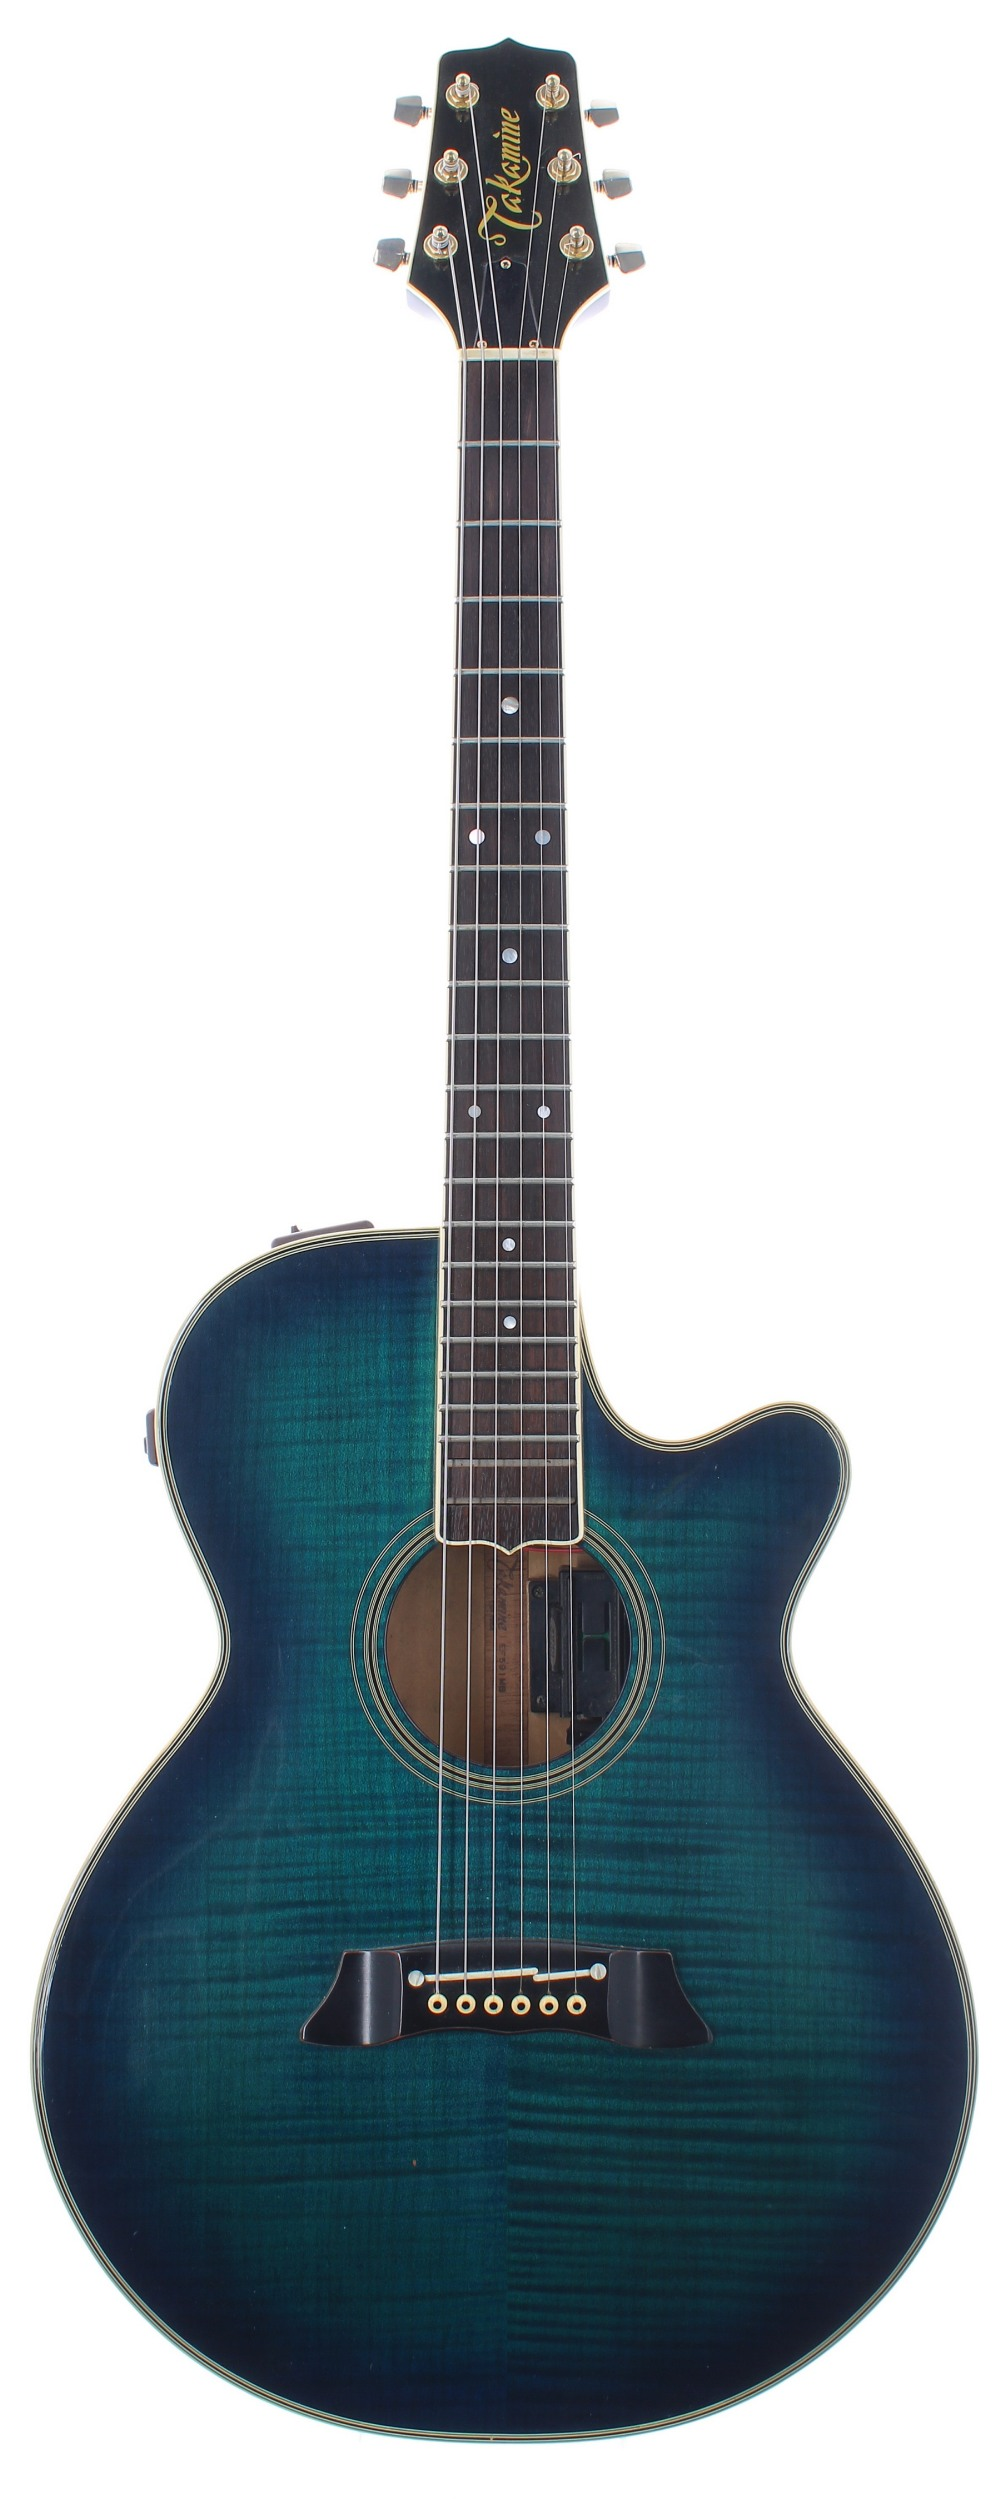 Takamine EF591 MB electro-acoustic guitar, made in Japan; Finish: blue burst, minor surface